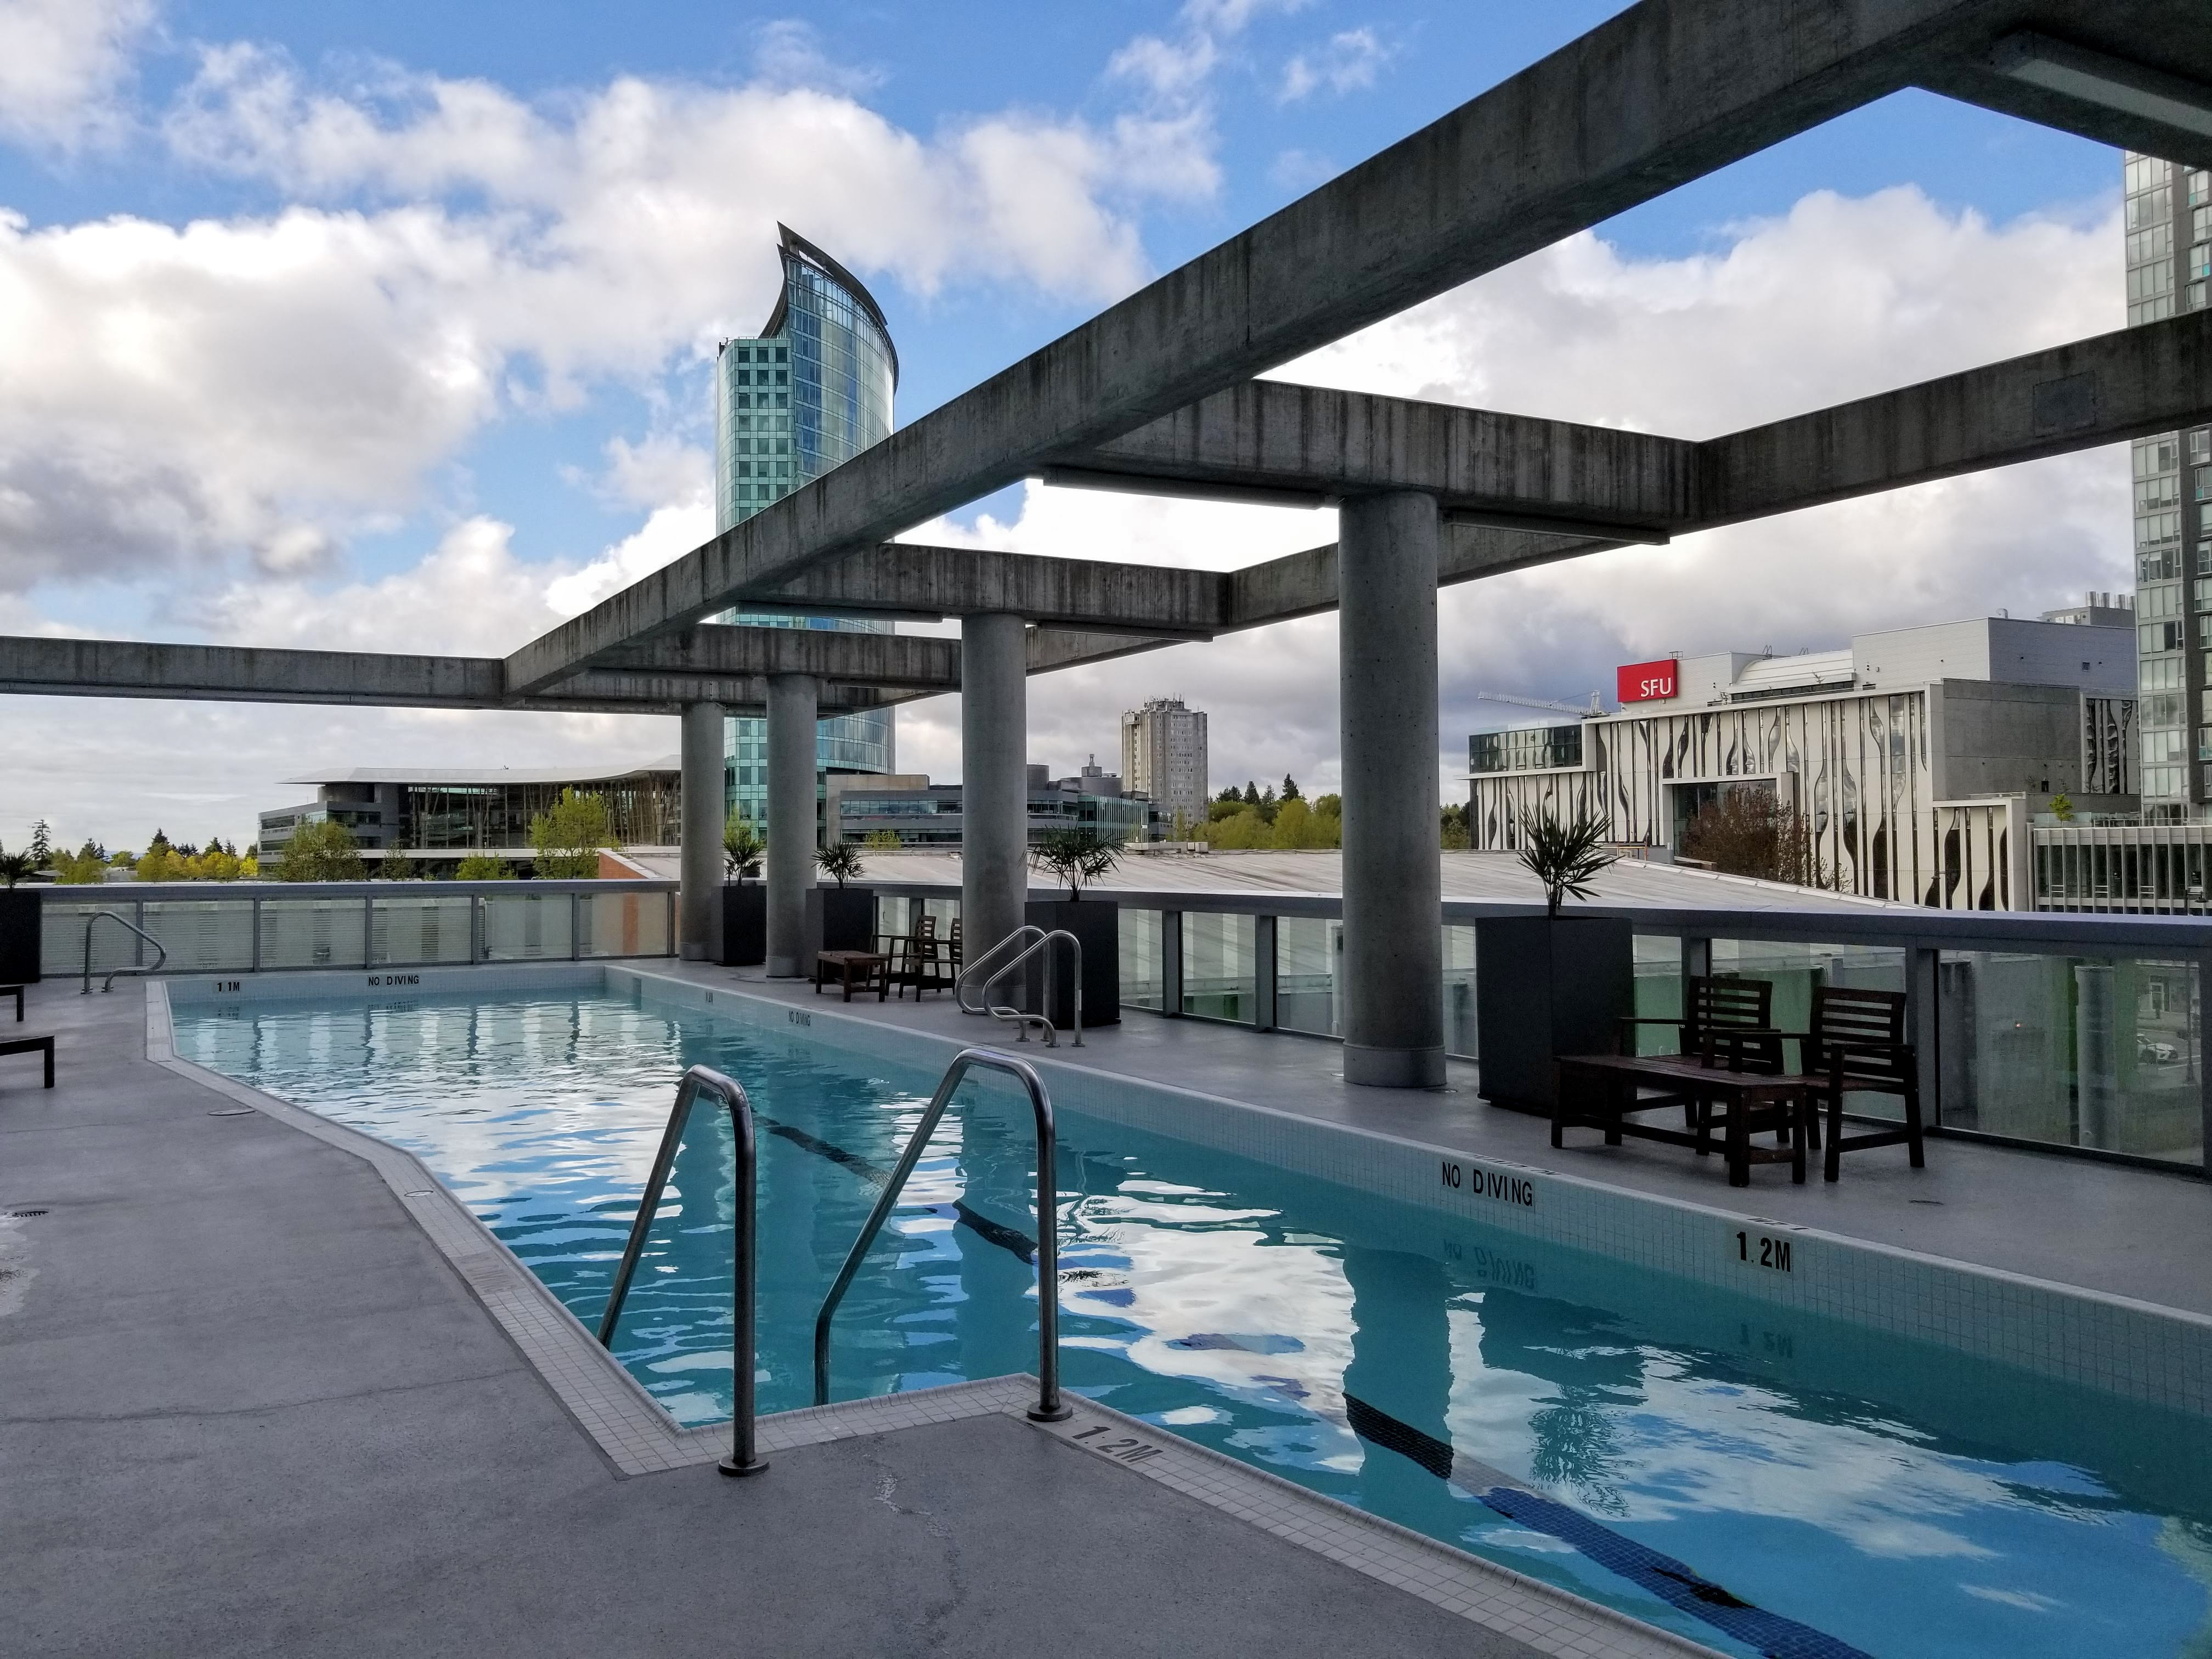 Civic Hotel outdoor heated pool area